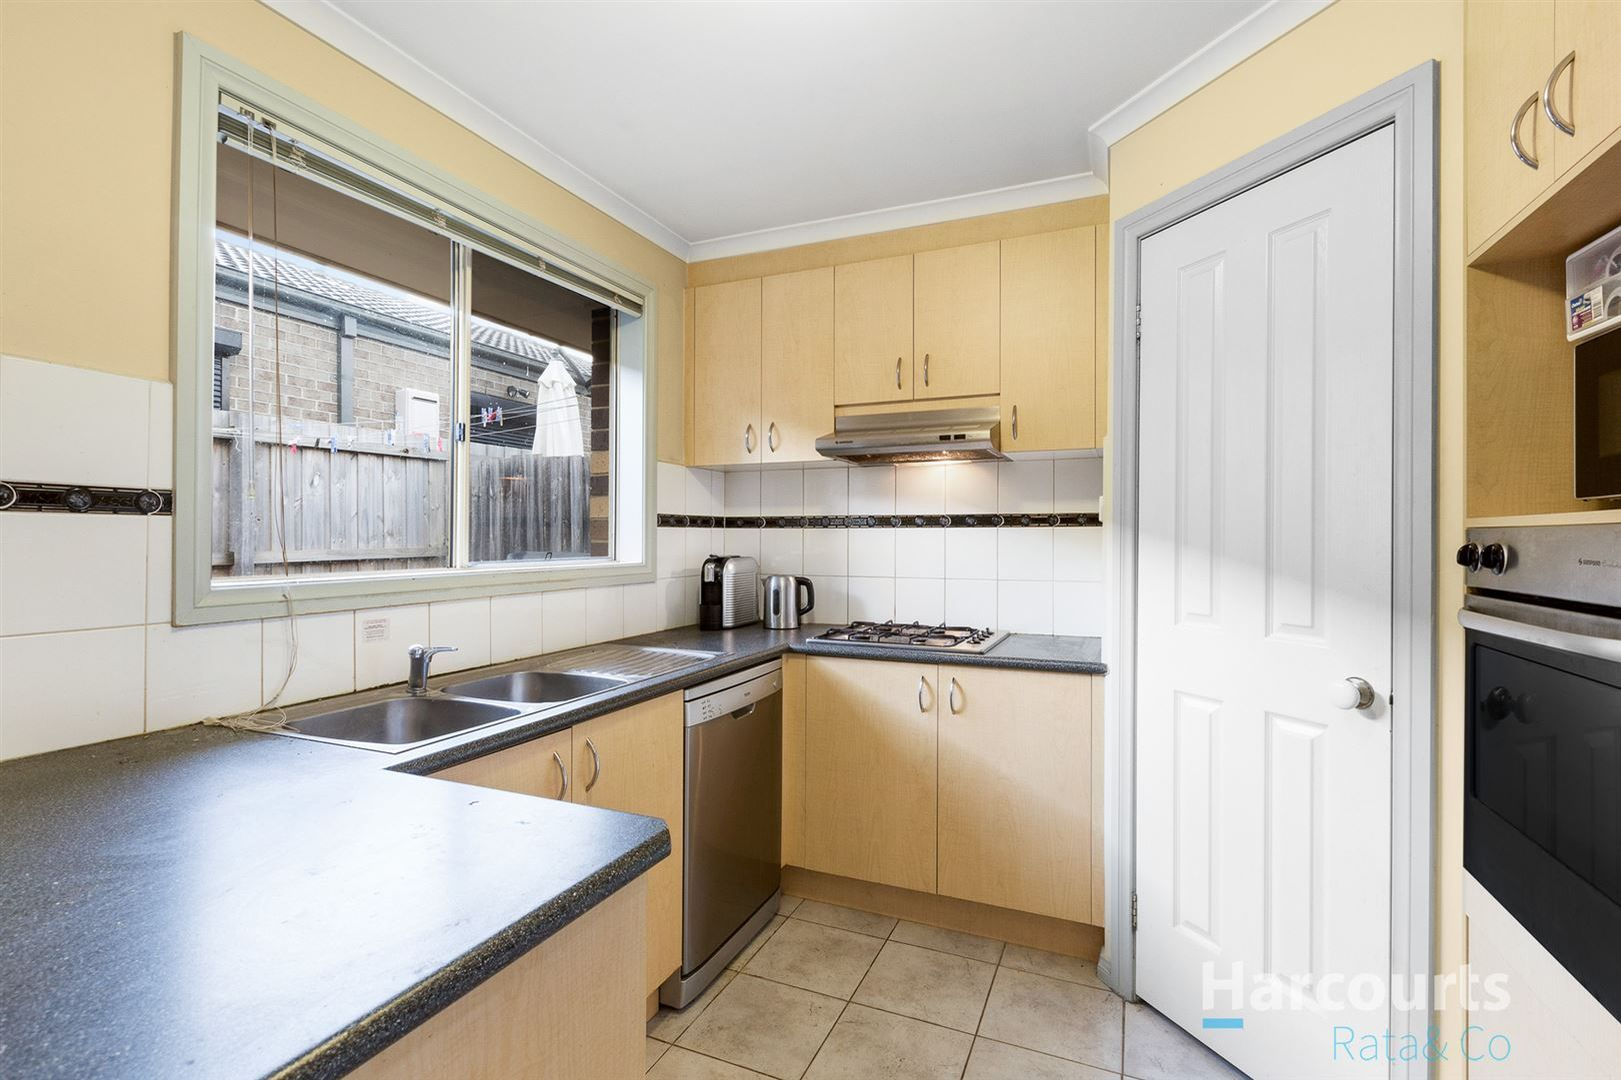 2/5 Smith Street, Reservoir VIC 3073, Image 1